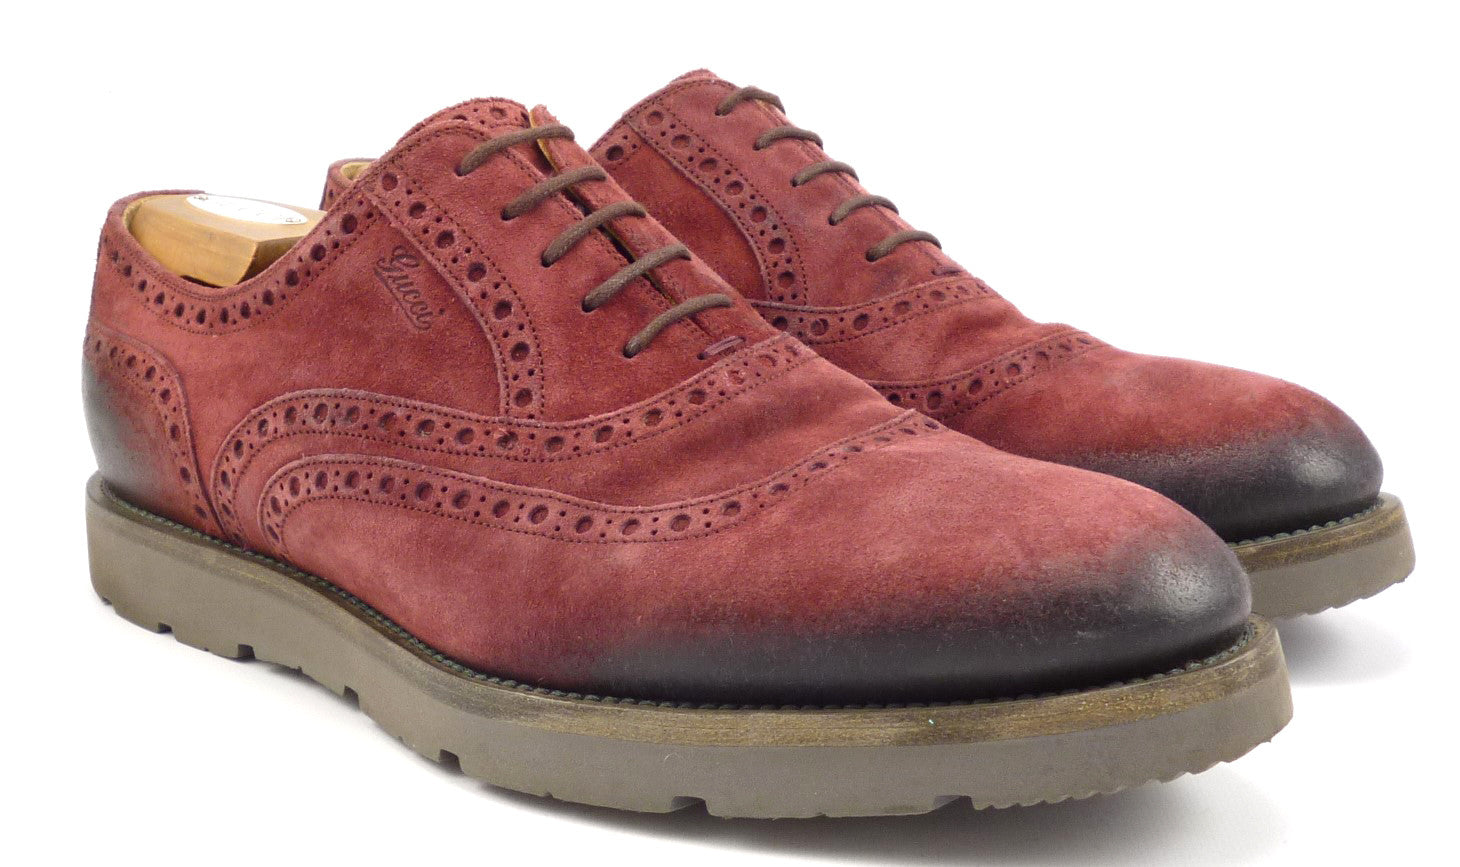 c19093cf1 Gucci Mens Shoes 10 Camden Suede Oxfords 322483 Red – Distinctive ...